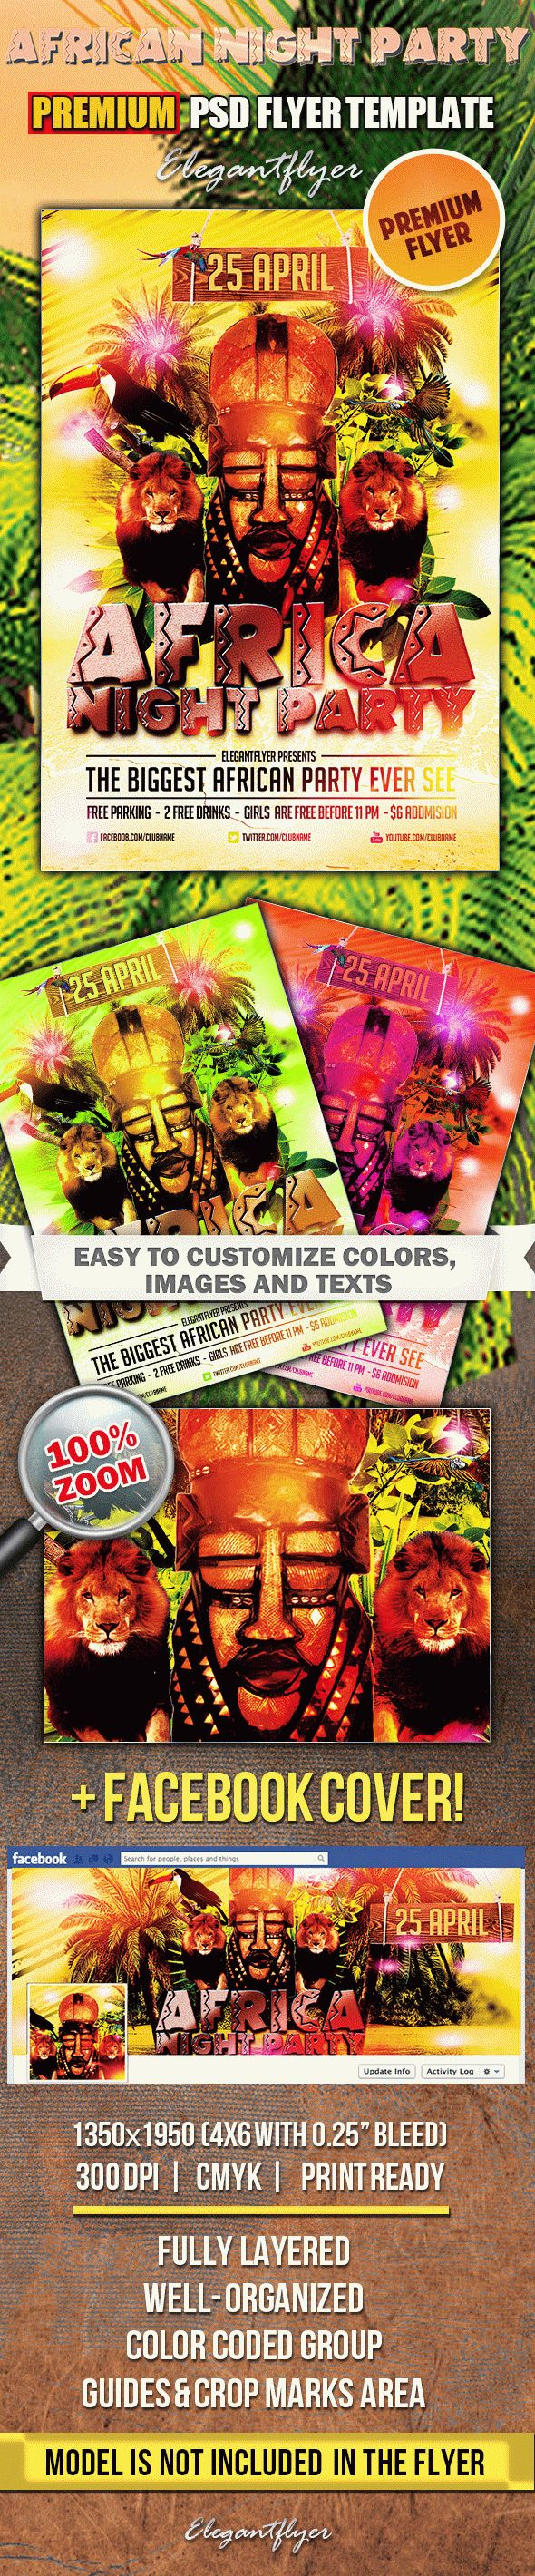 africa night party  u2013 psd flyer templates  u2013 by elegantflyer